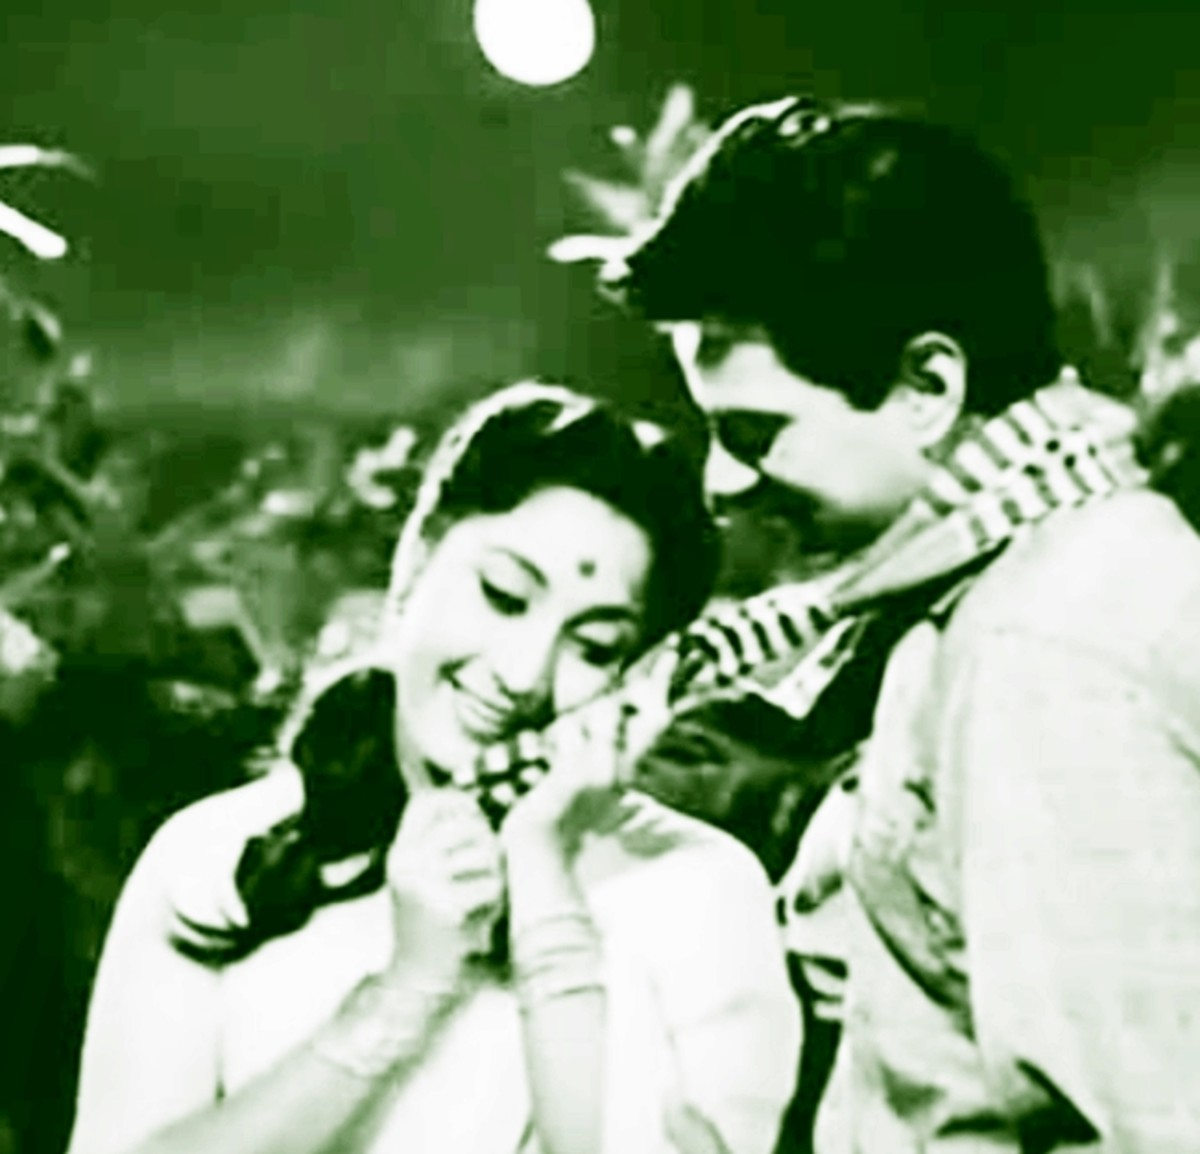 A great song expressing love and affection in Raag Darbari Kanada